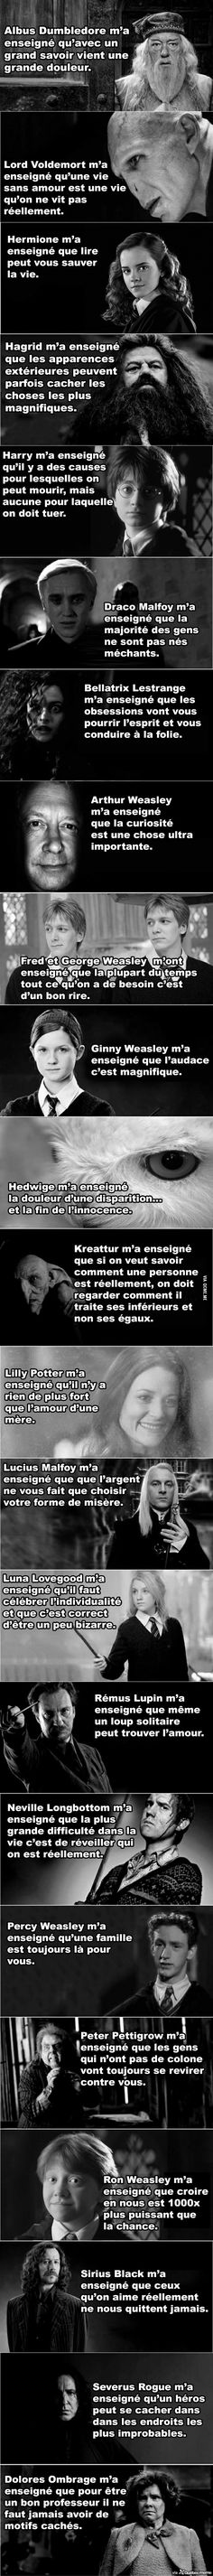 Ideas for memes funny life harry potter Harry Potter Film, Harry Potter Anime, Harry Potter Universal, Harry Potter World, Jarry Potter, Rage, Movies And Series, Bagdad, Life Humor